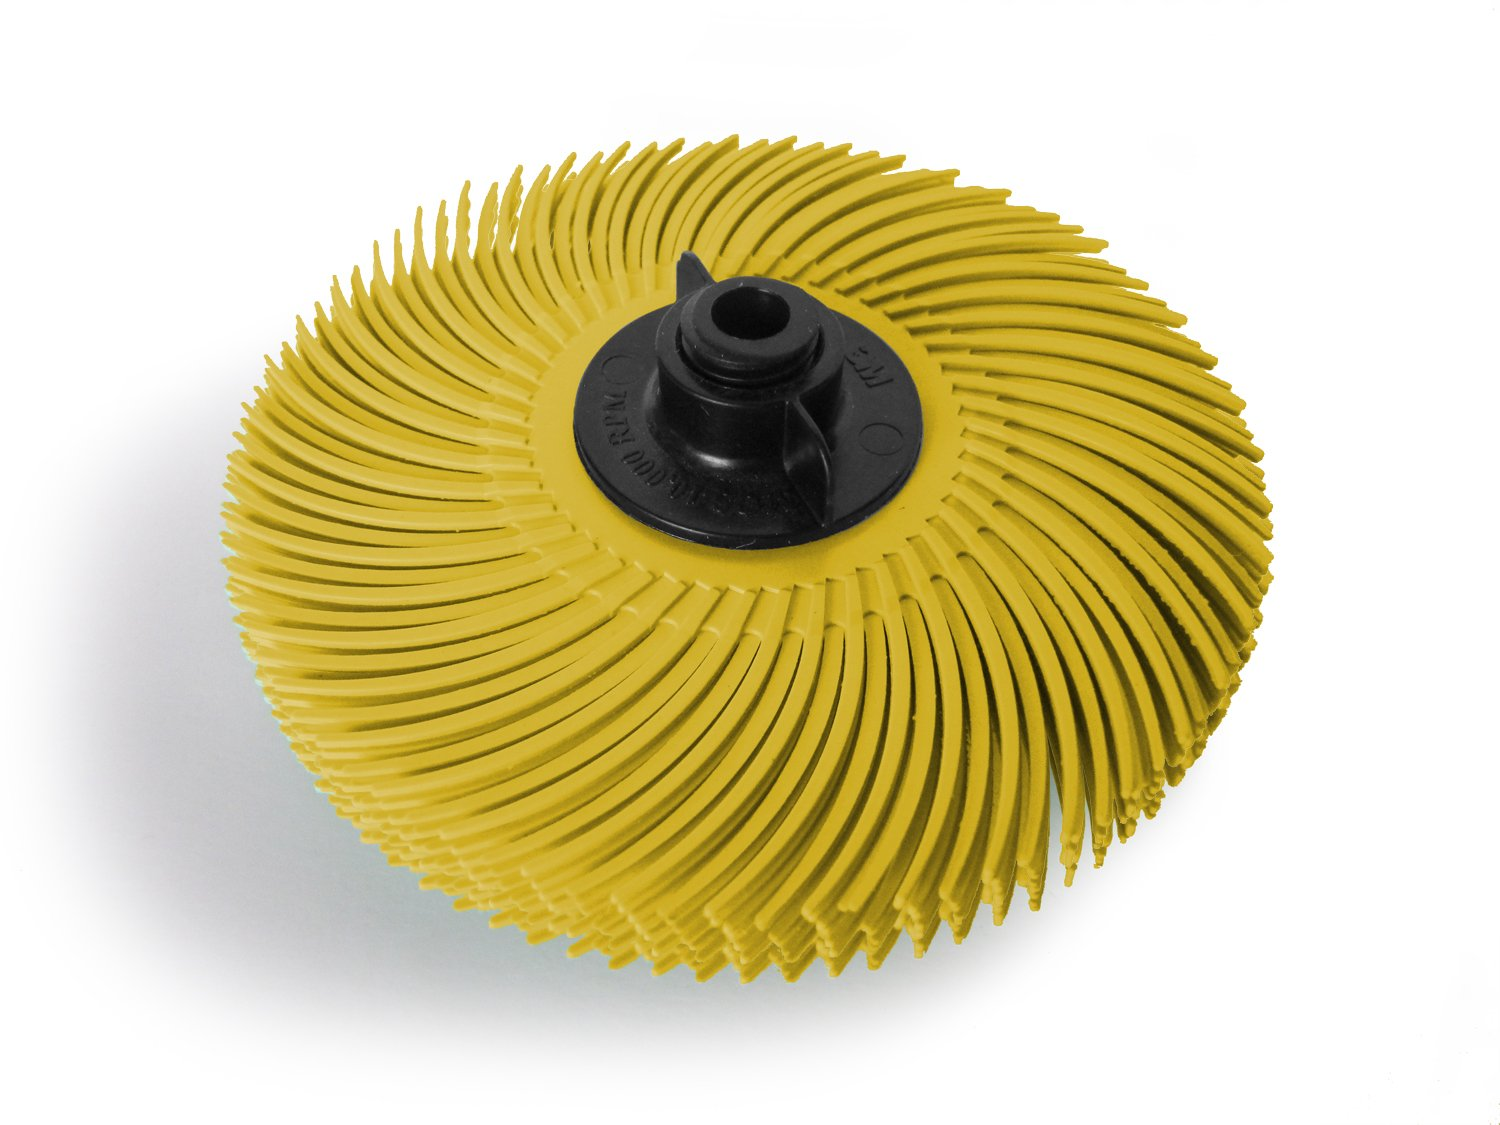 JoolTool 3M Scotch Brite Yellow Radial Bristle Brush Assembled with Plastic Tapered Mandrel Hub 6 Ply 3 Diameter Grit 80